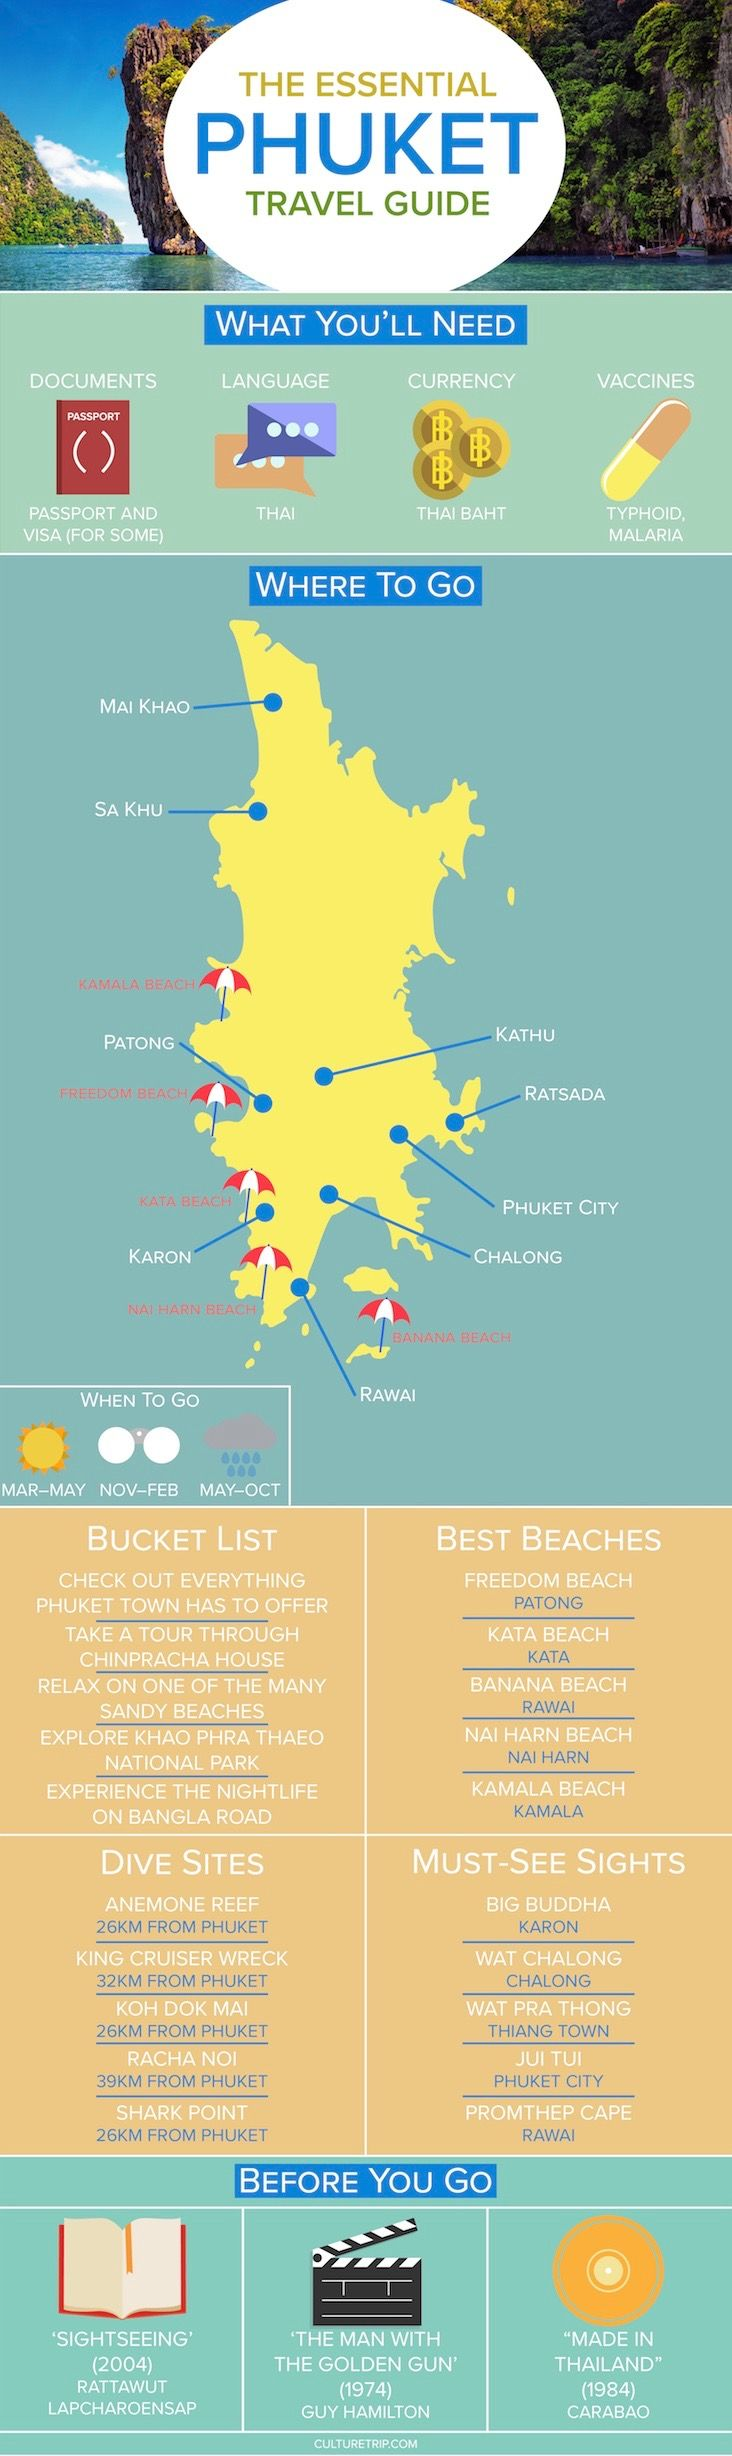 The Essential Travel Guide to Phuket (Infographic)|Pinterest: @theculturetrip